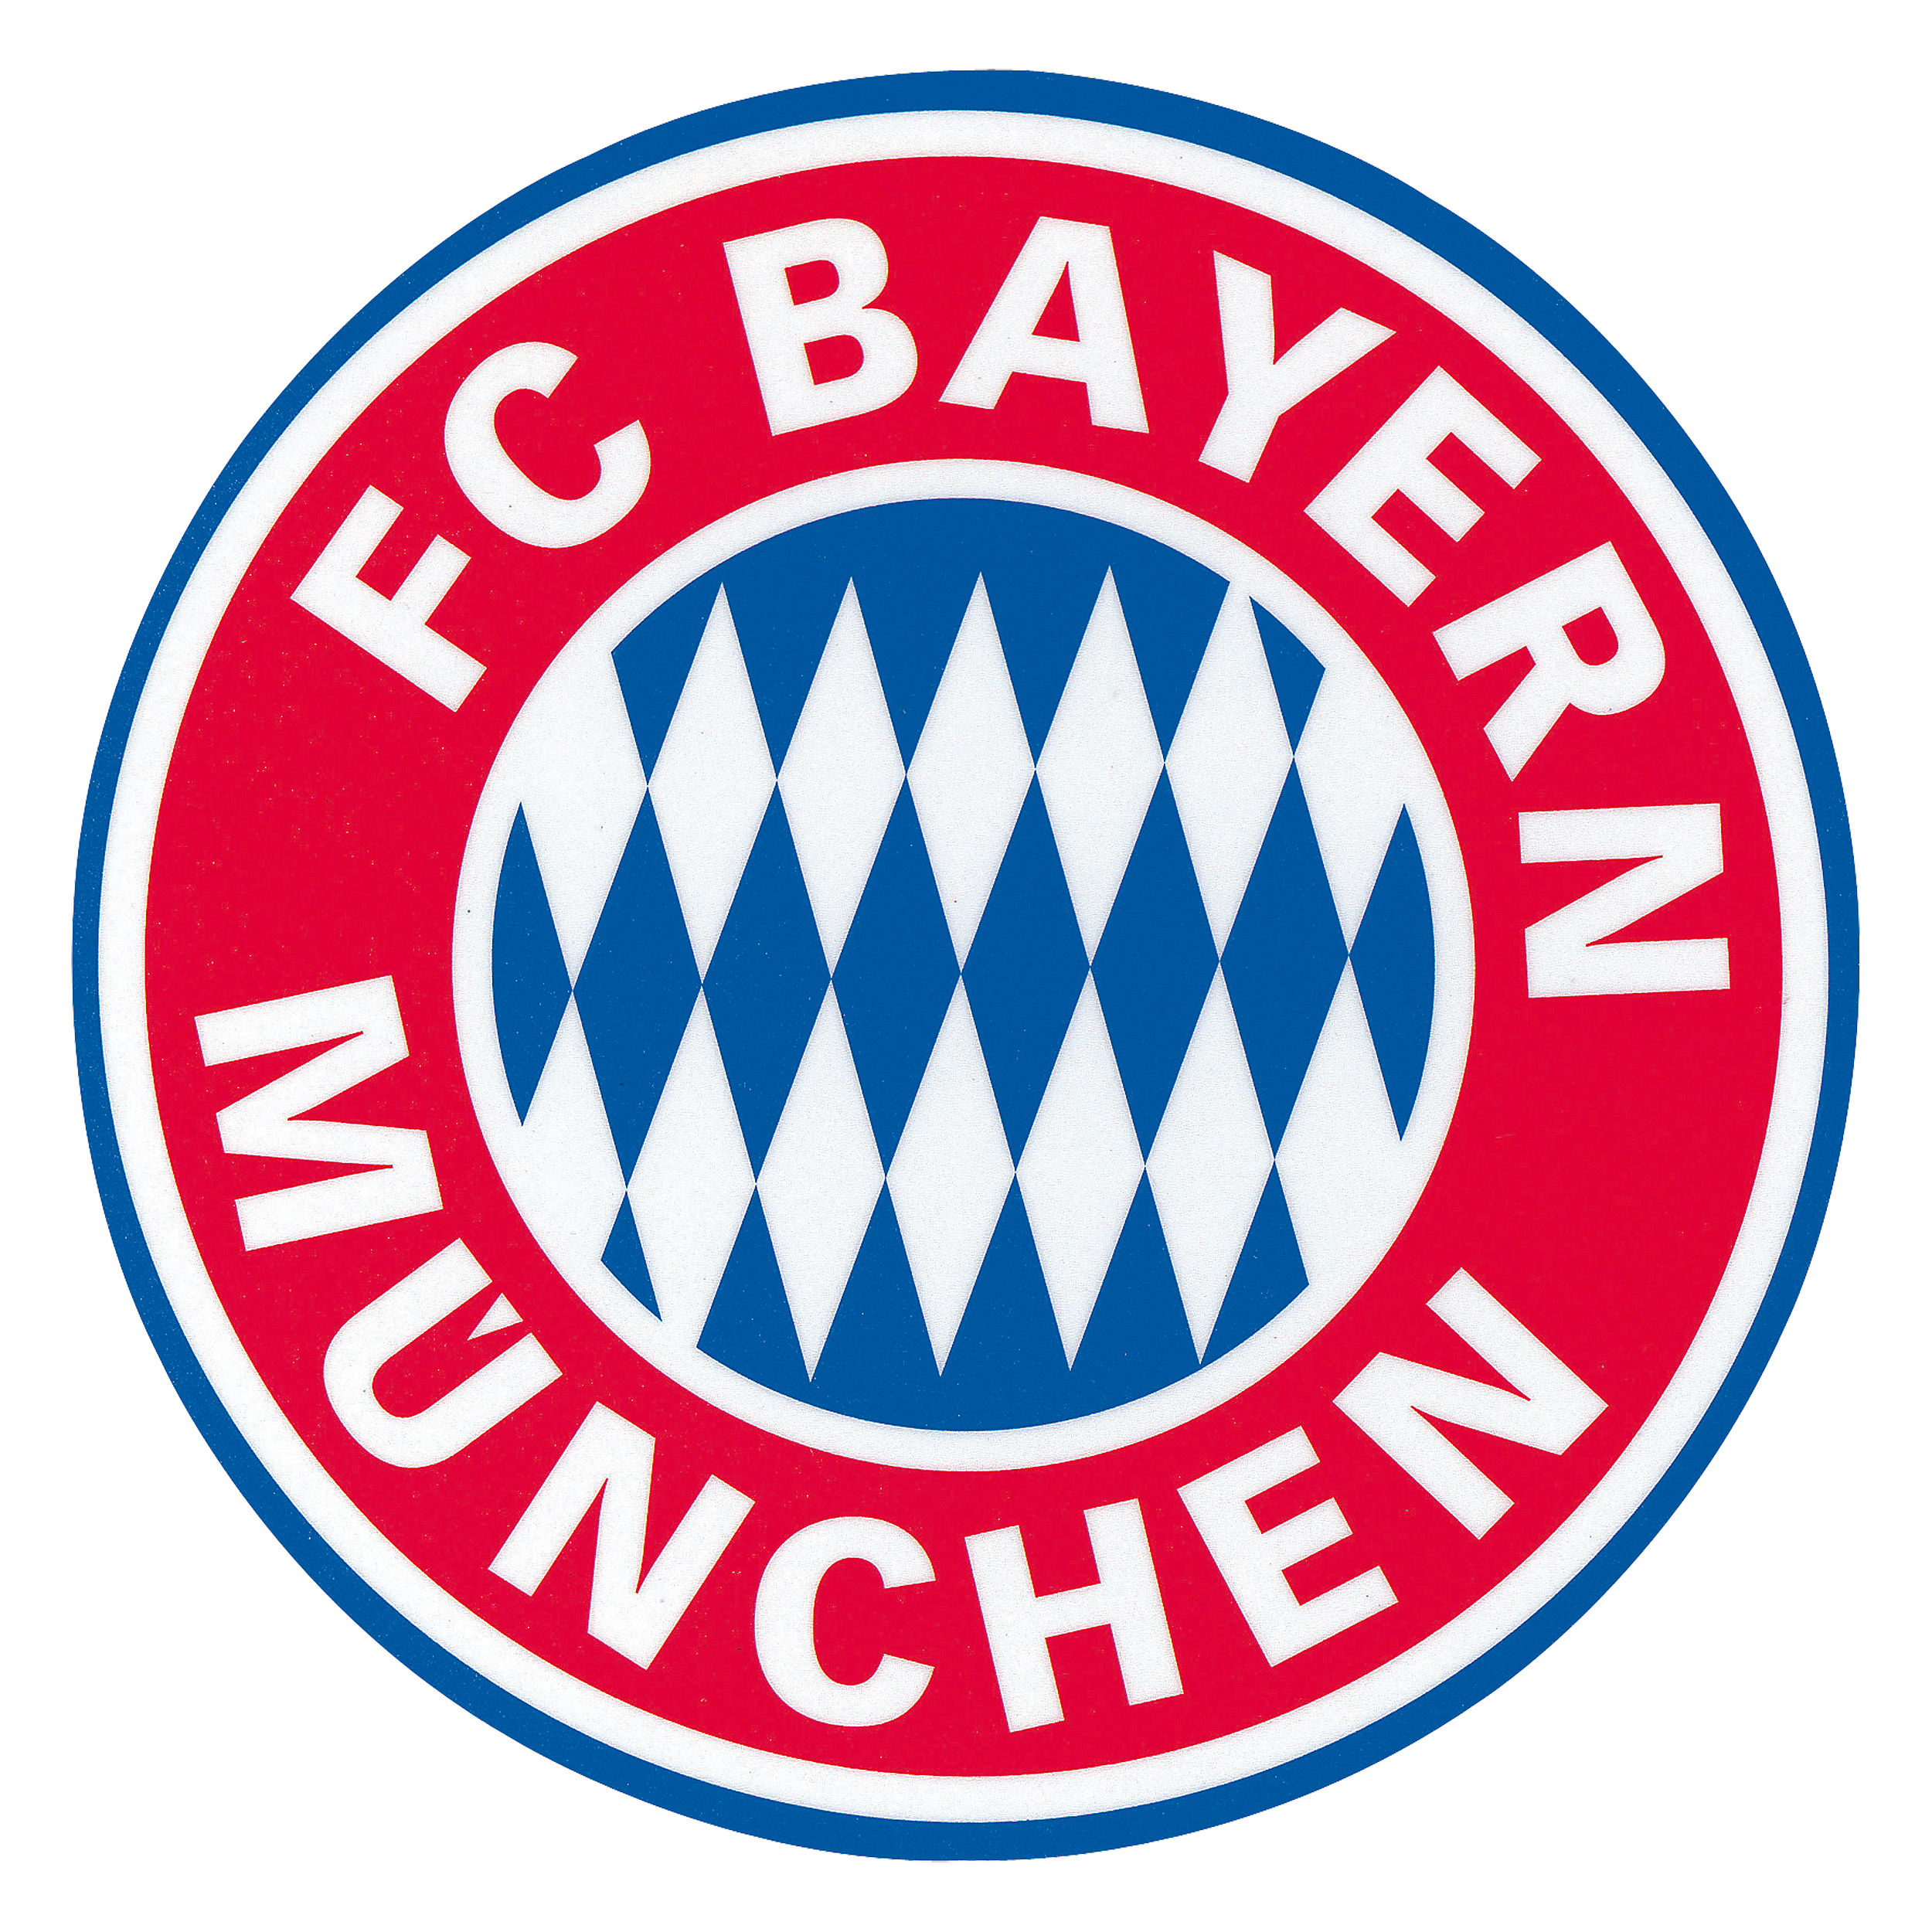 fc bayern m nchen fcb mousepad mouse pad logo offizielles lizenzprodukt ebay. Black Bedroom Furniture Sets. Home Design Ideas